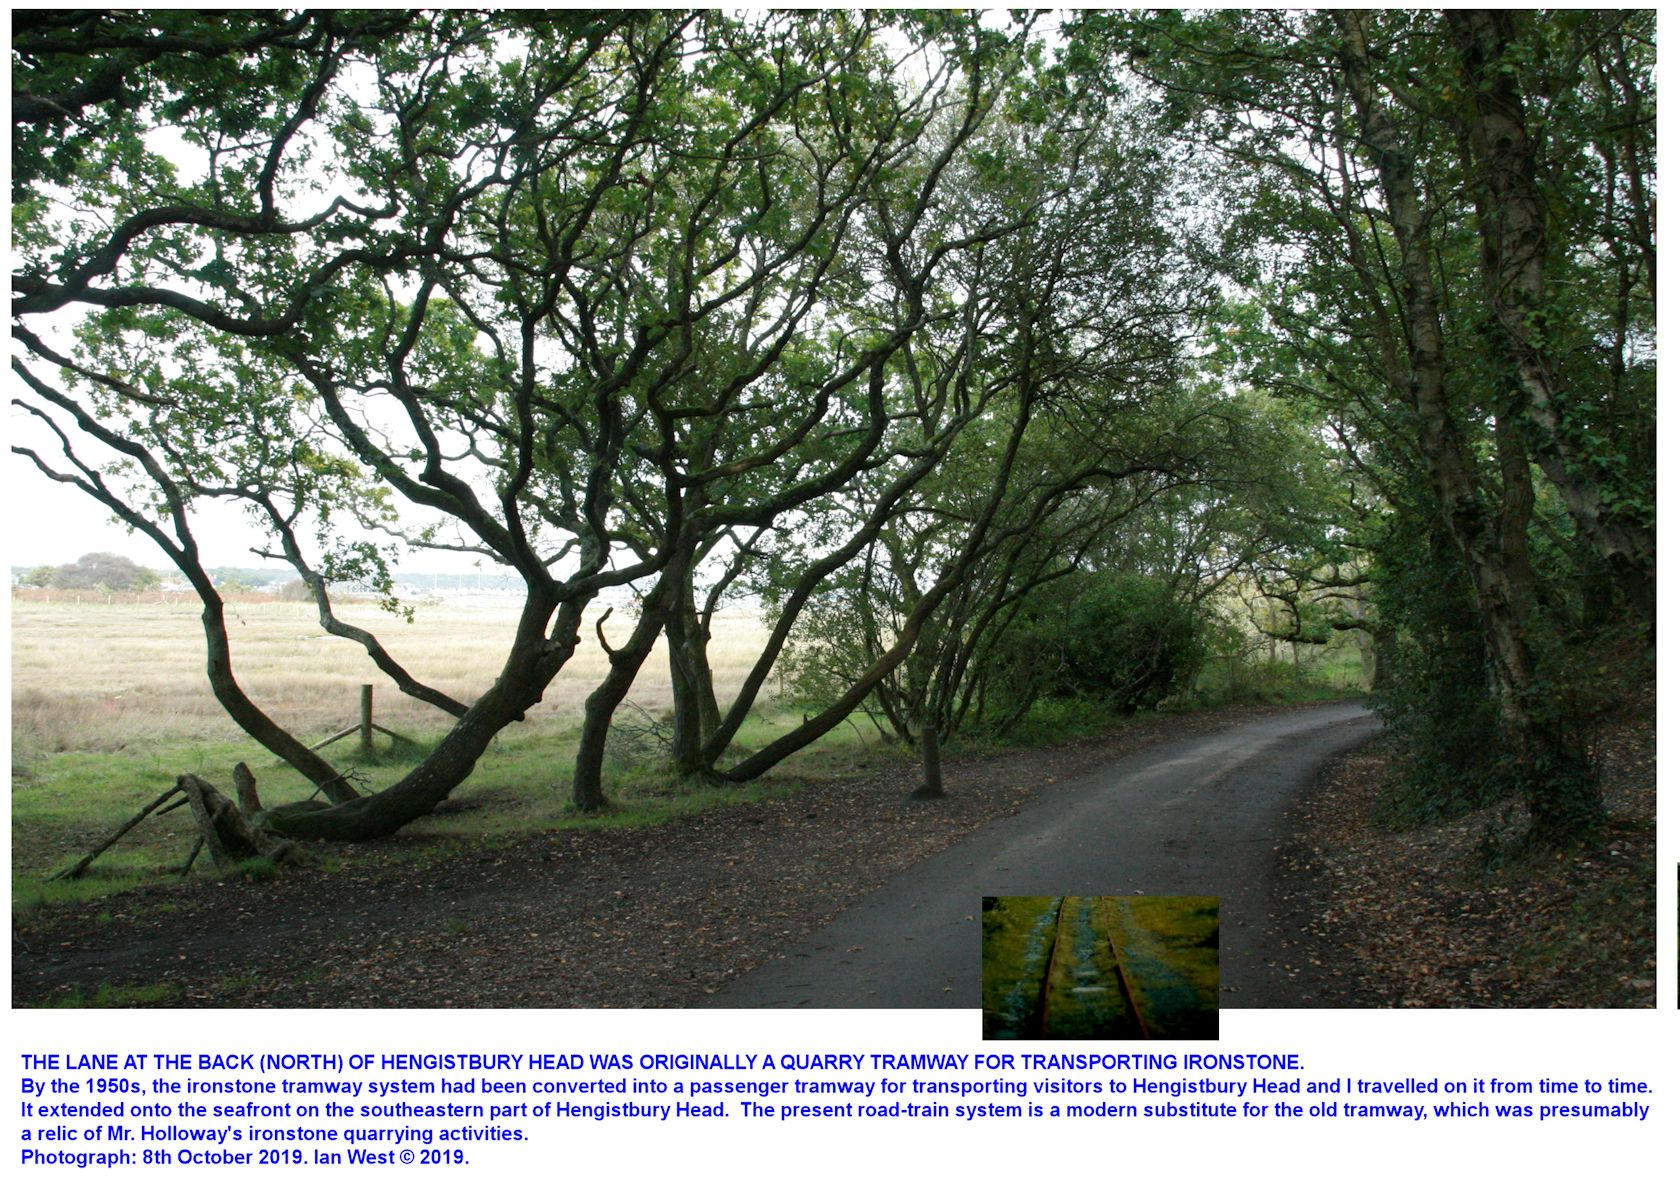 The wooded lane on the north side of Hengistbury Head was originally a tramway track with rails, and was used for transporting ironstone